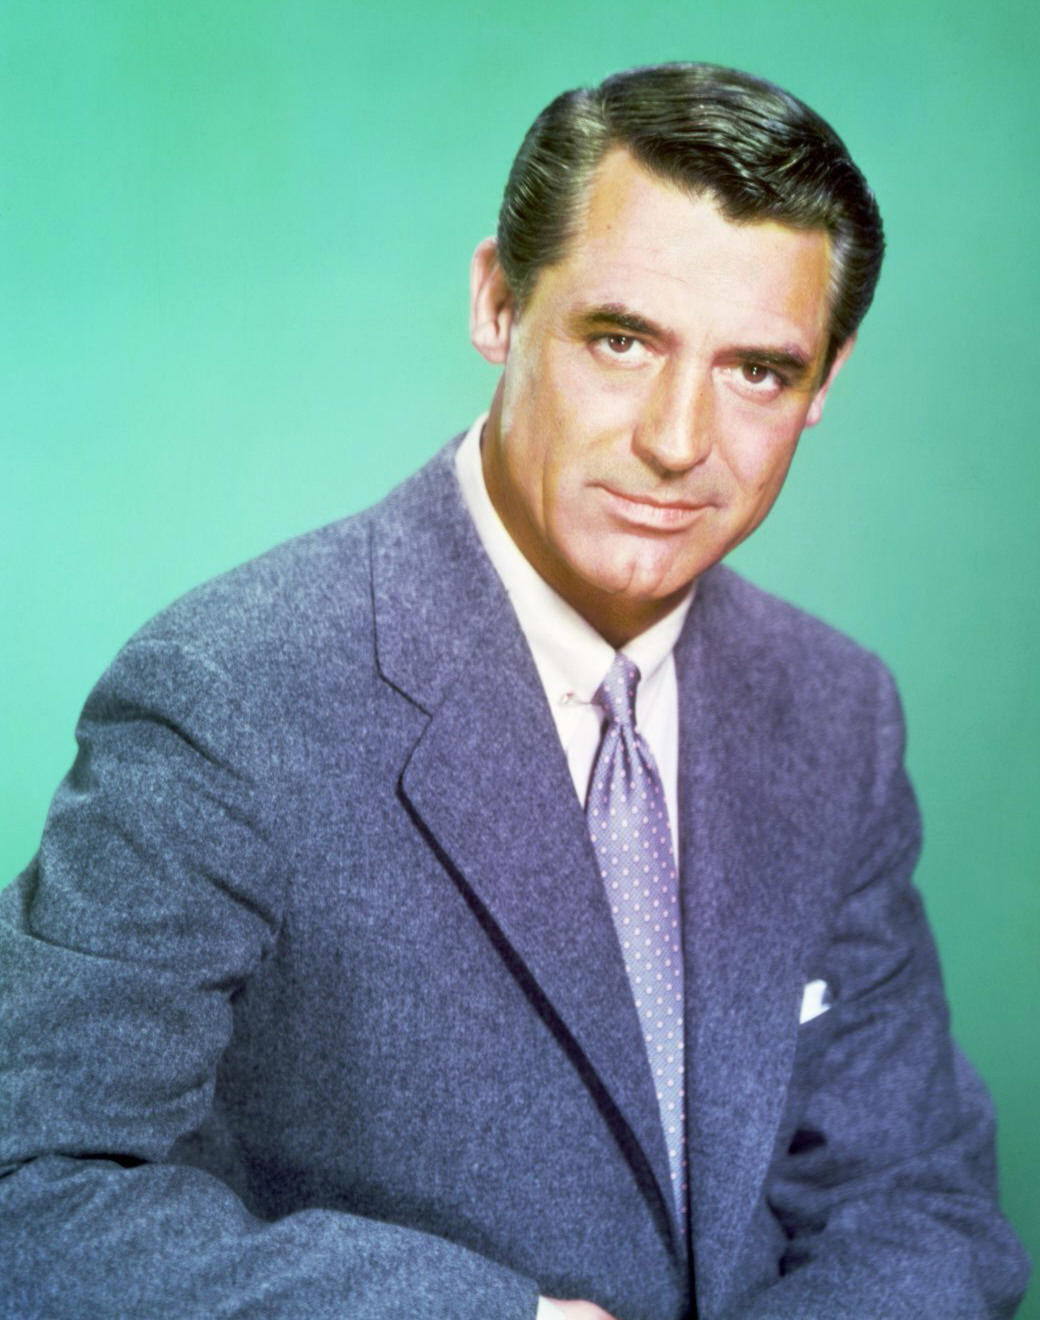 Cary-Grant To Catch a Thief 2